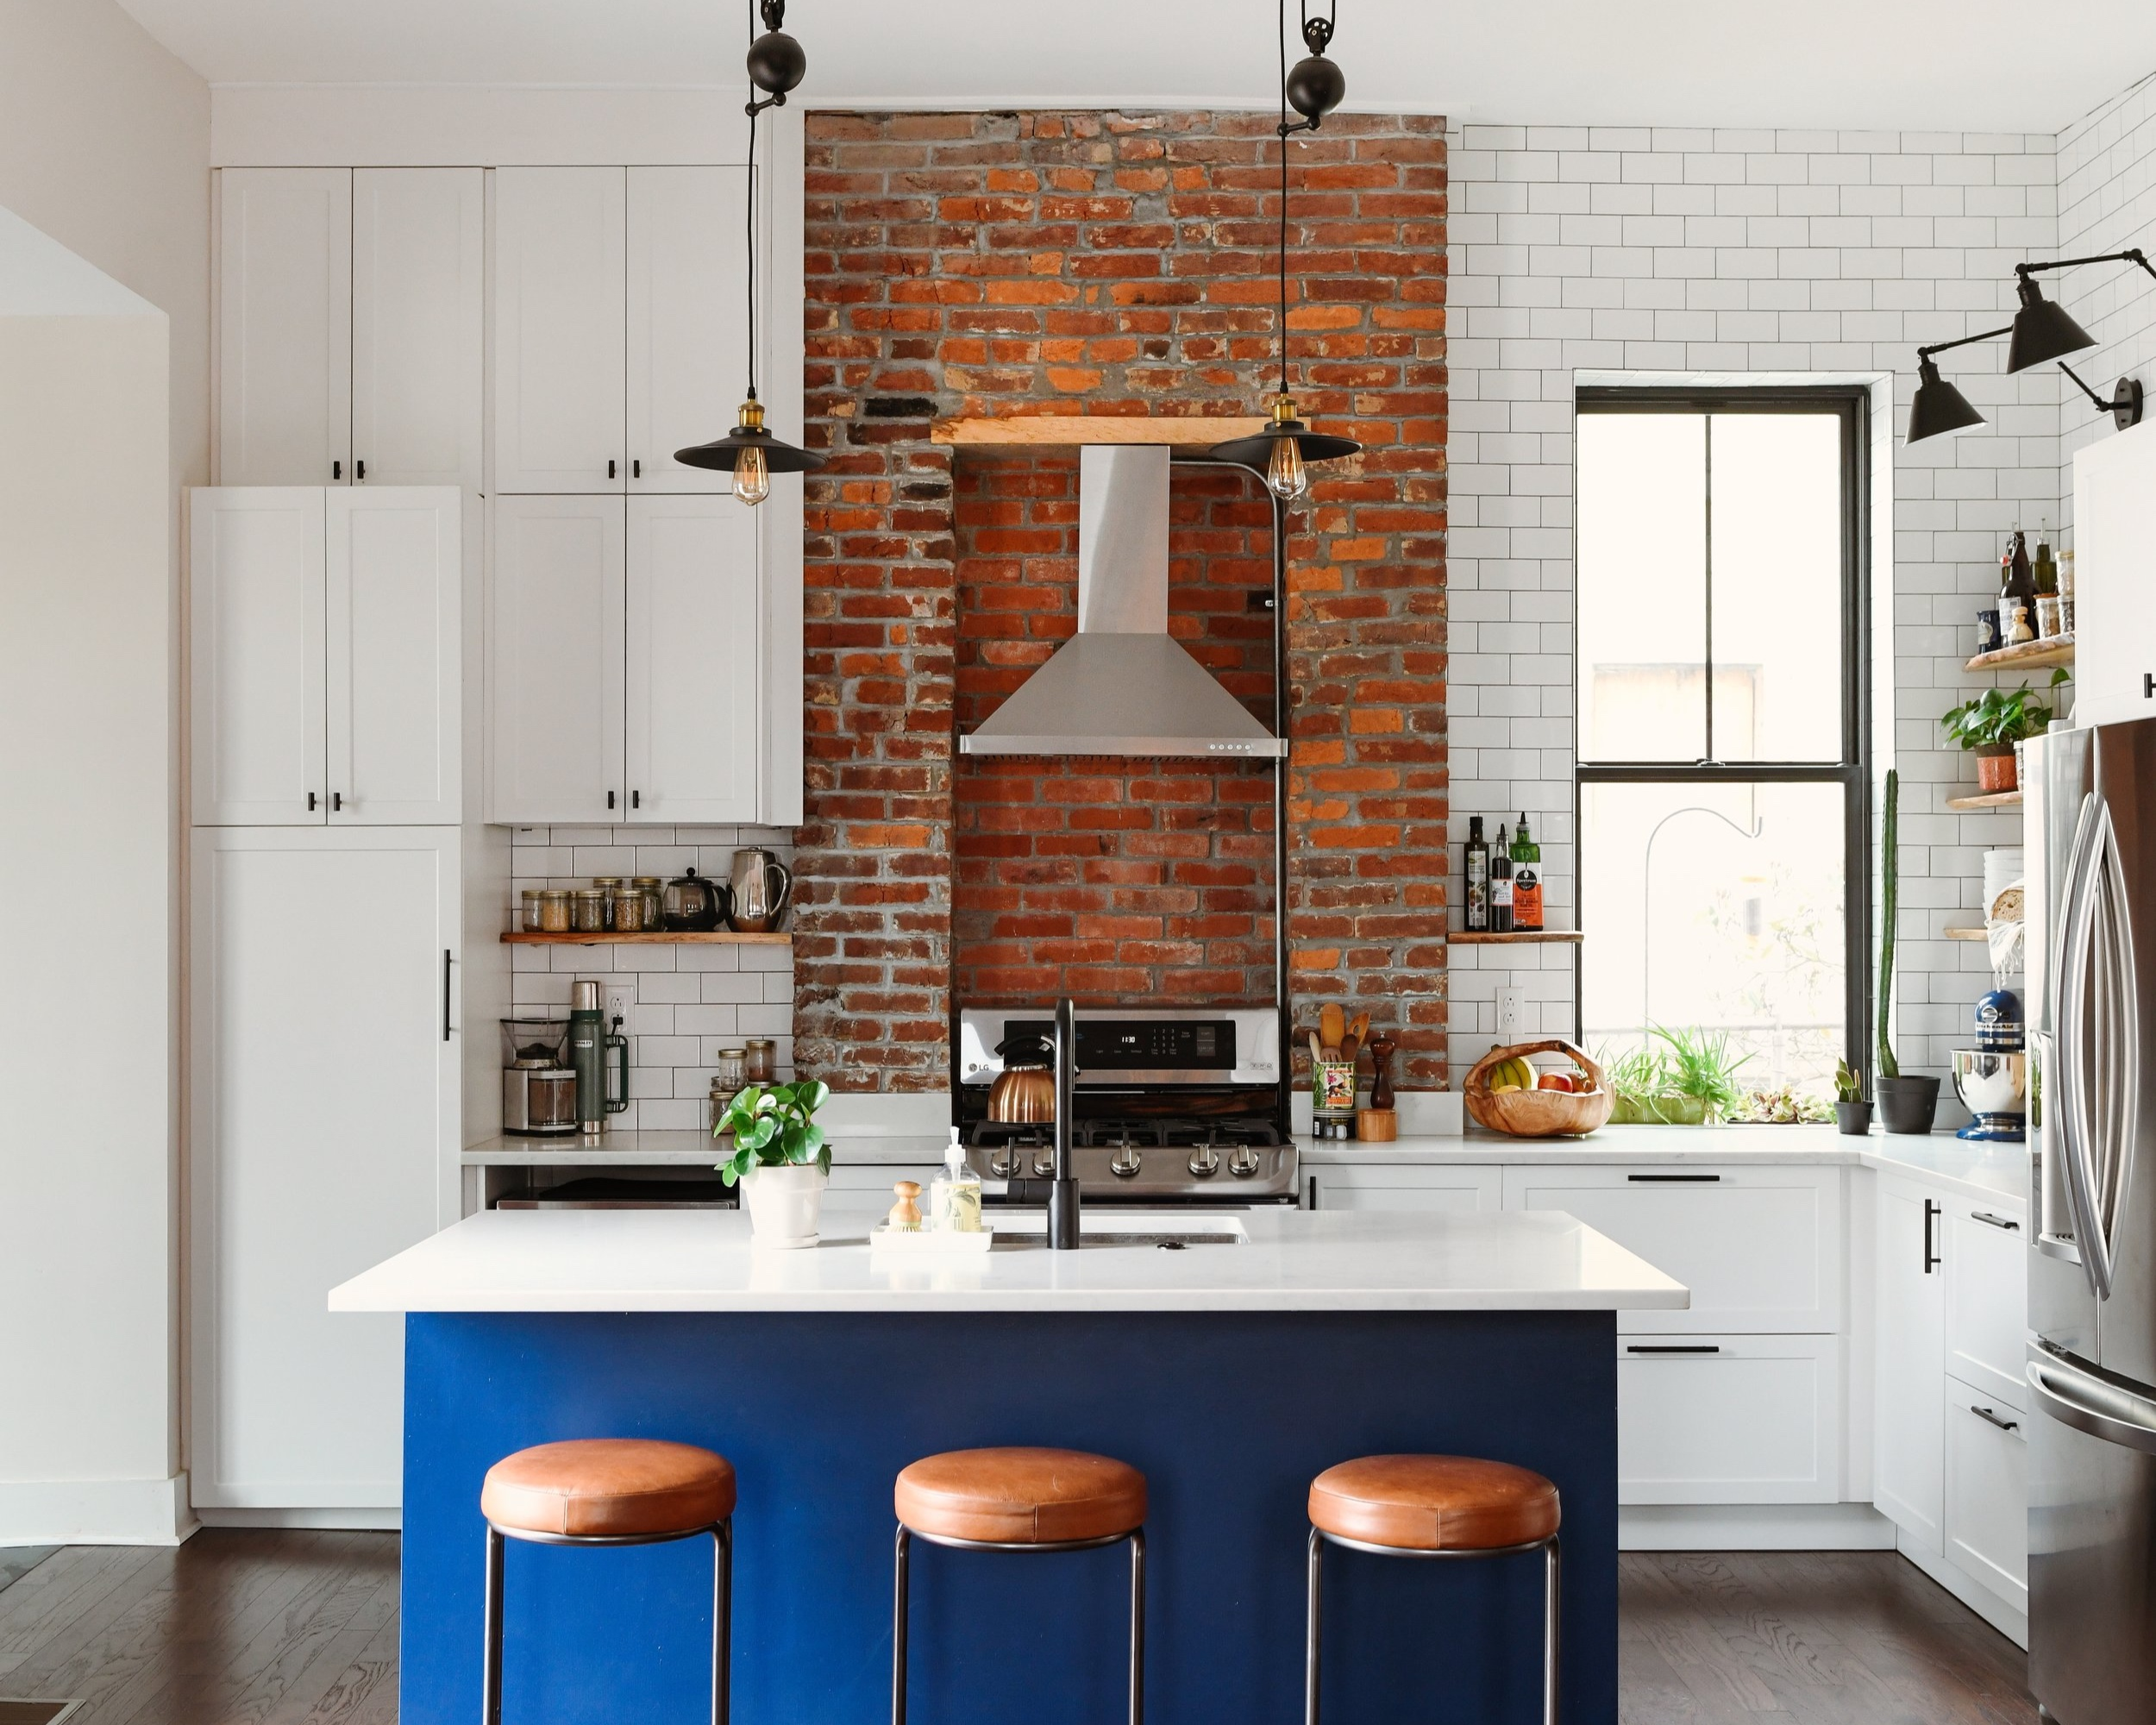 Katy+Popple+Design+Kitchen+-+Leather+Stools+1.jpg